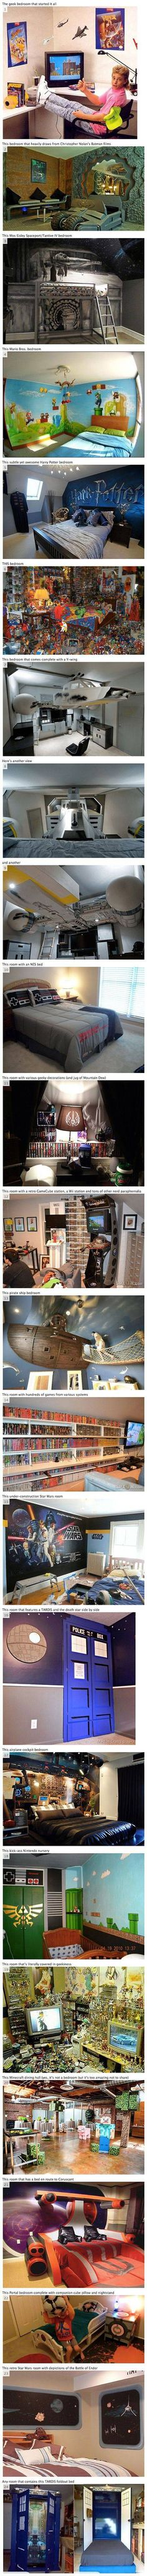 Some cool and geeky bedrooms, that think outside the box.